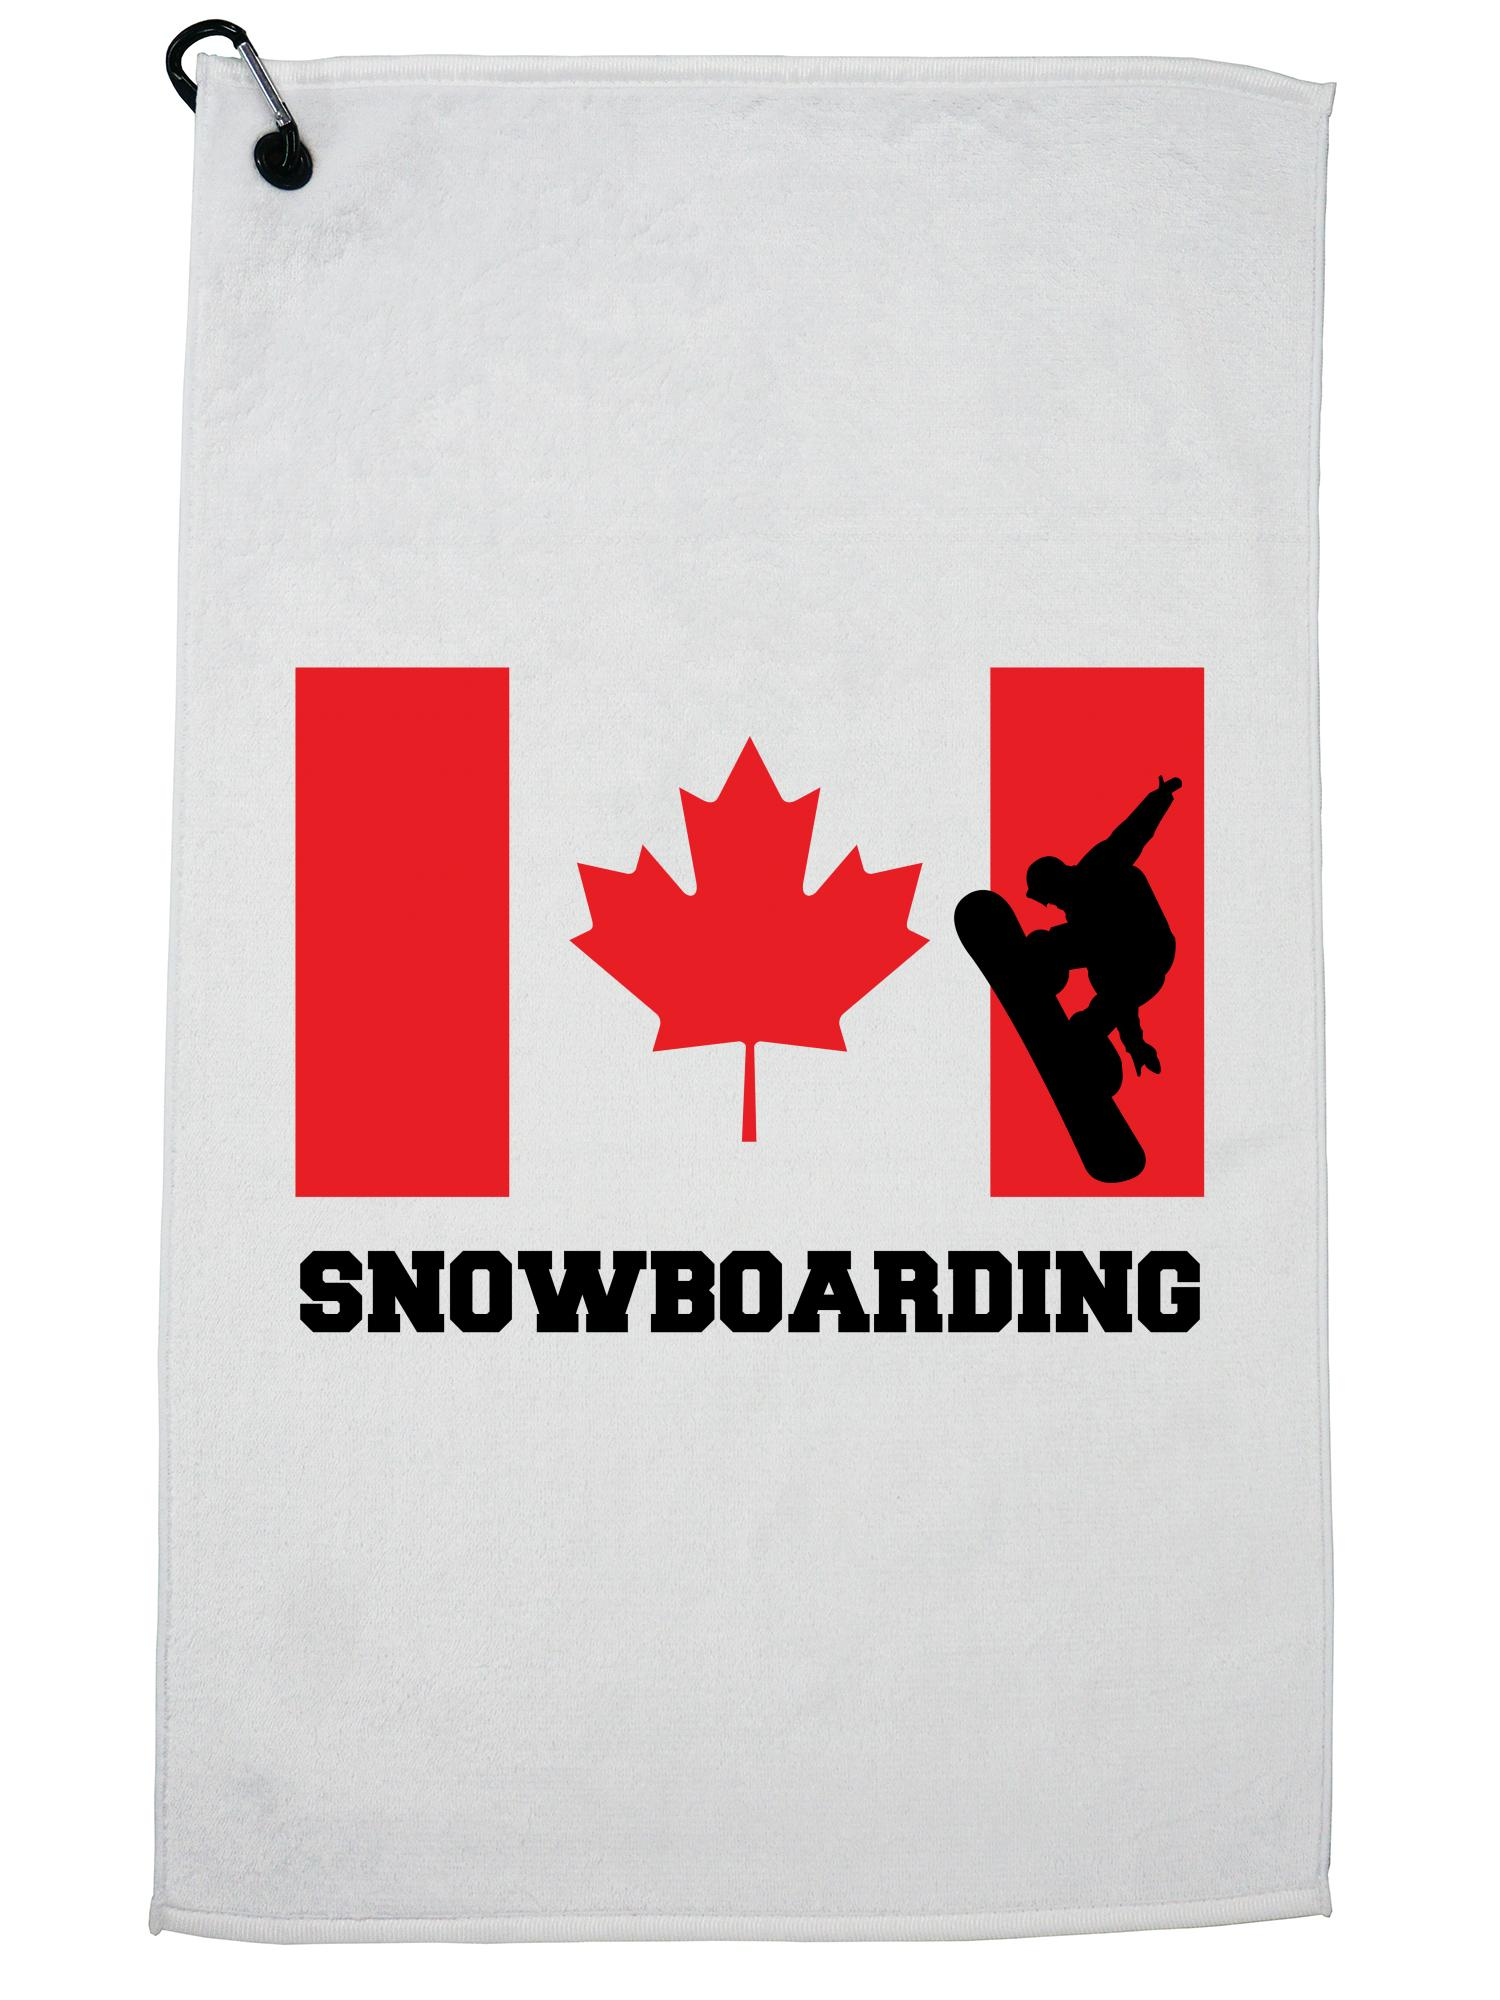 Canada Olympic Snowboarding Flag Silhouette Golf Towel with Carabiner Clip by Hollywood Thread